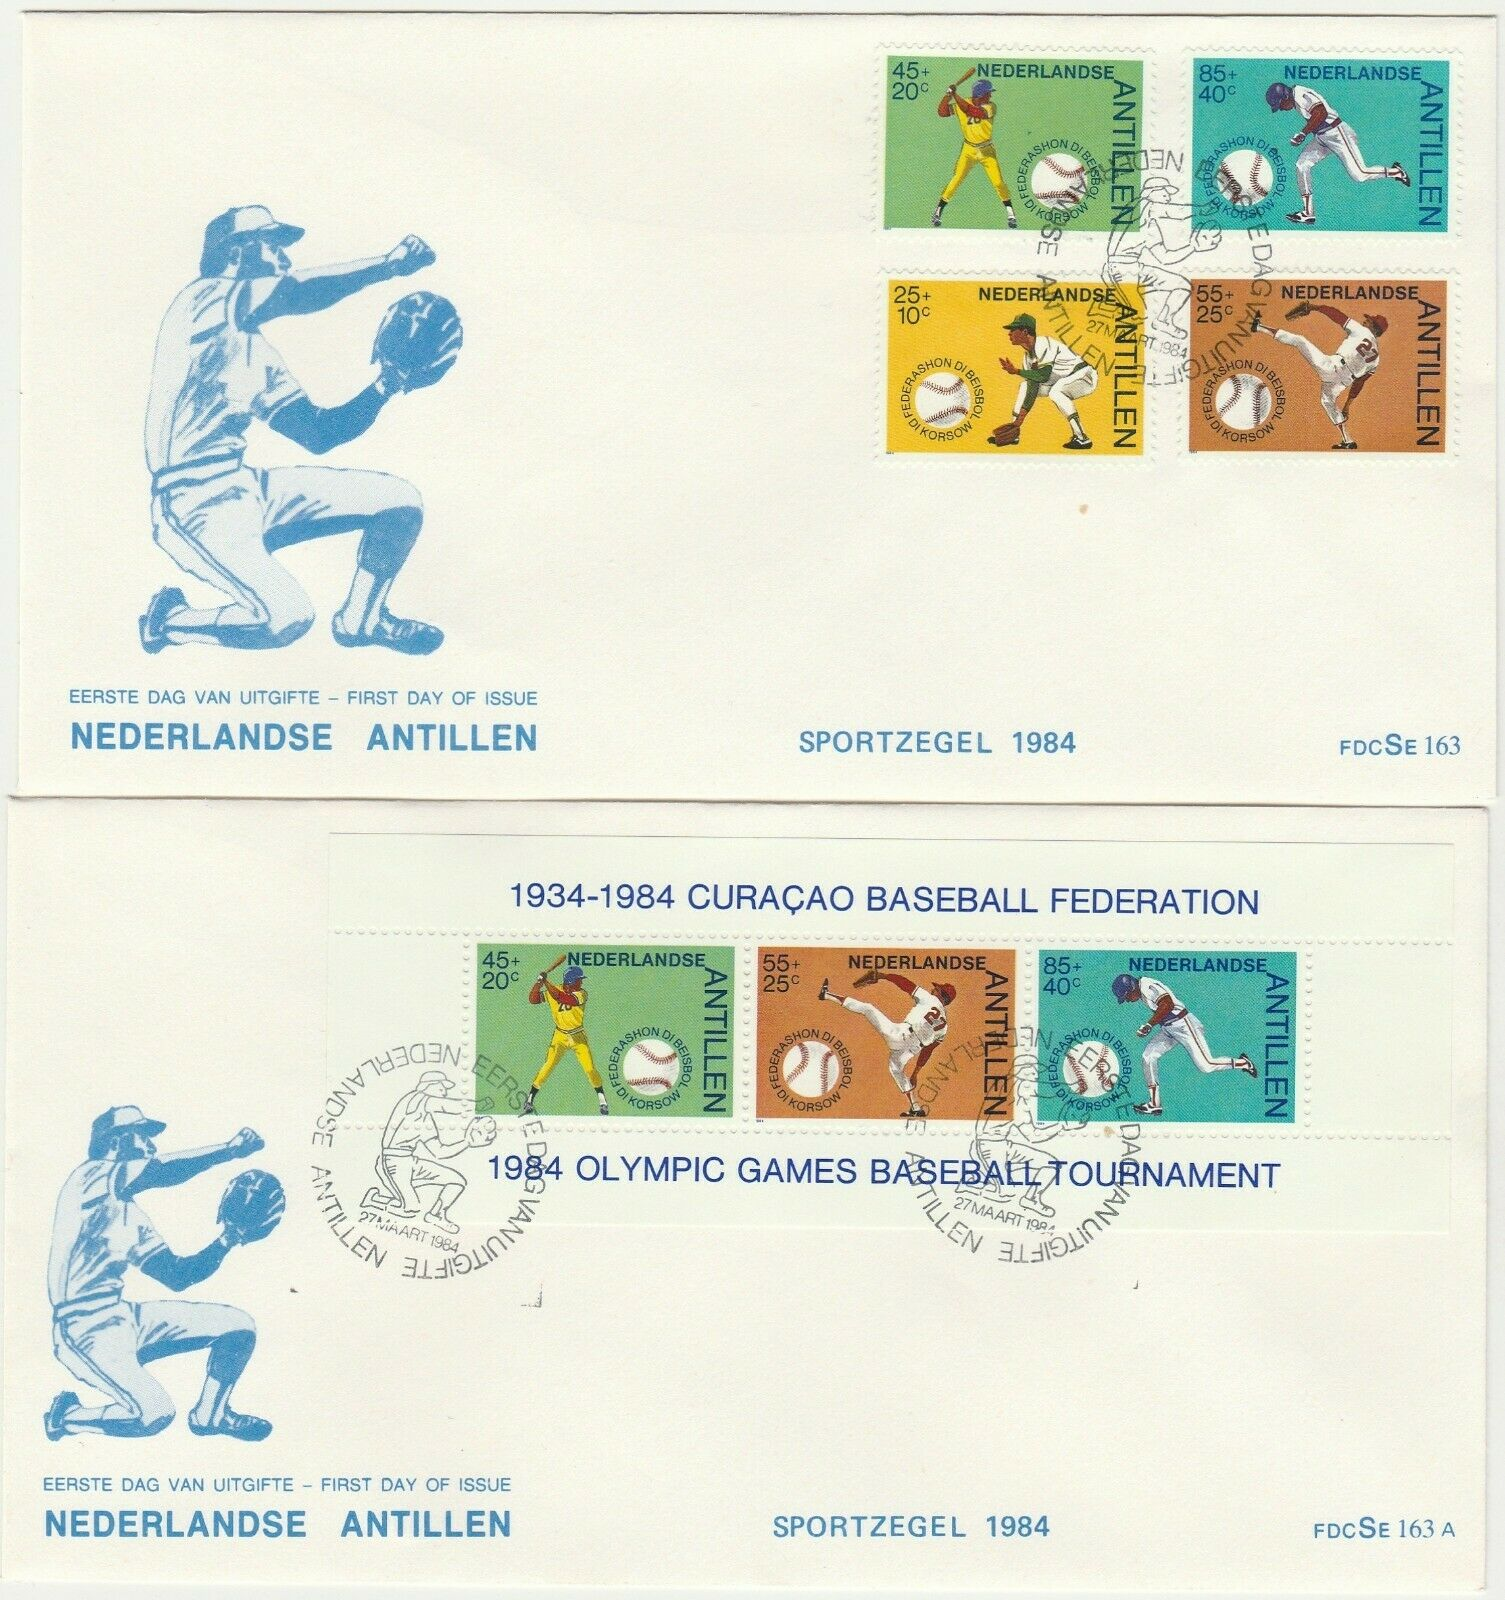 Netherlands Antilles 2 x FDC 1984 BASEBALL better cachet